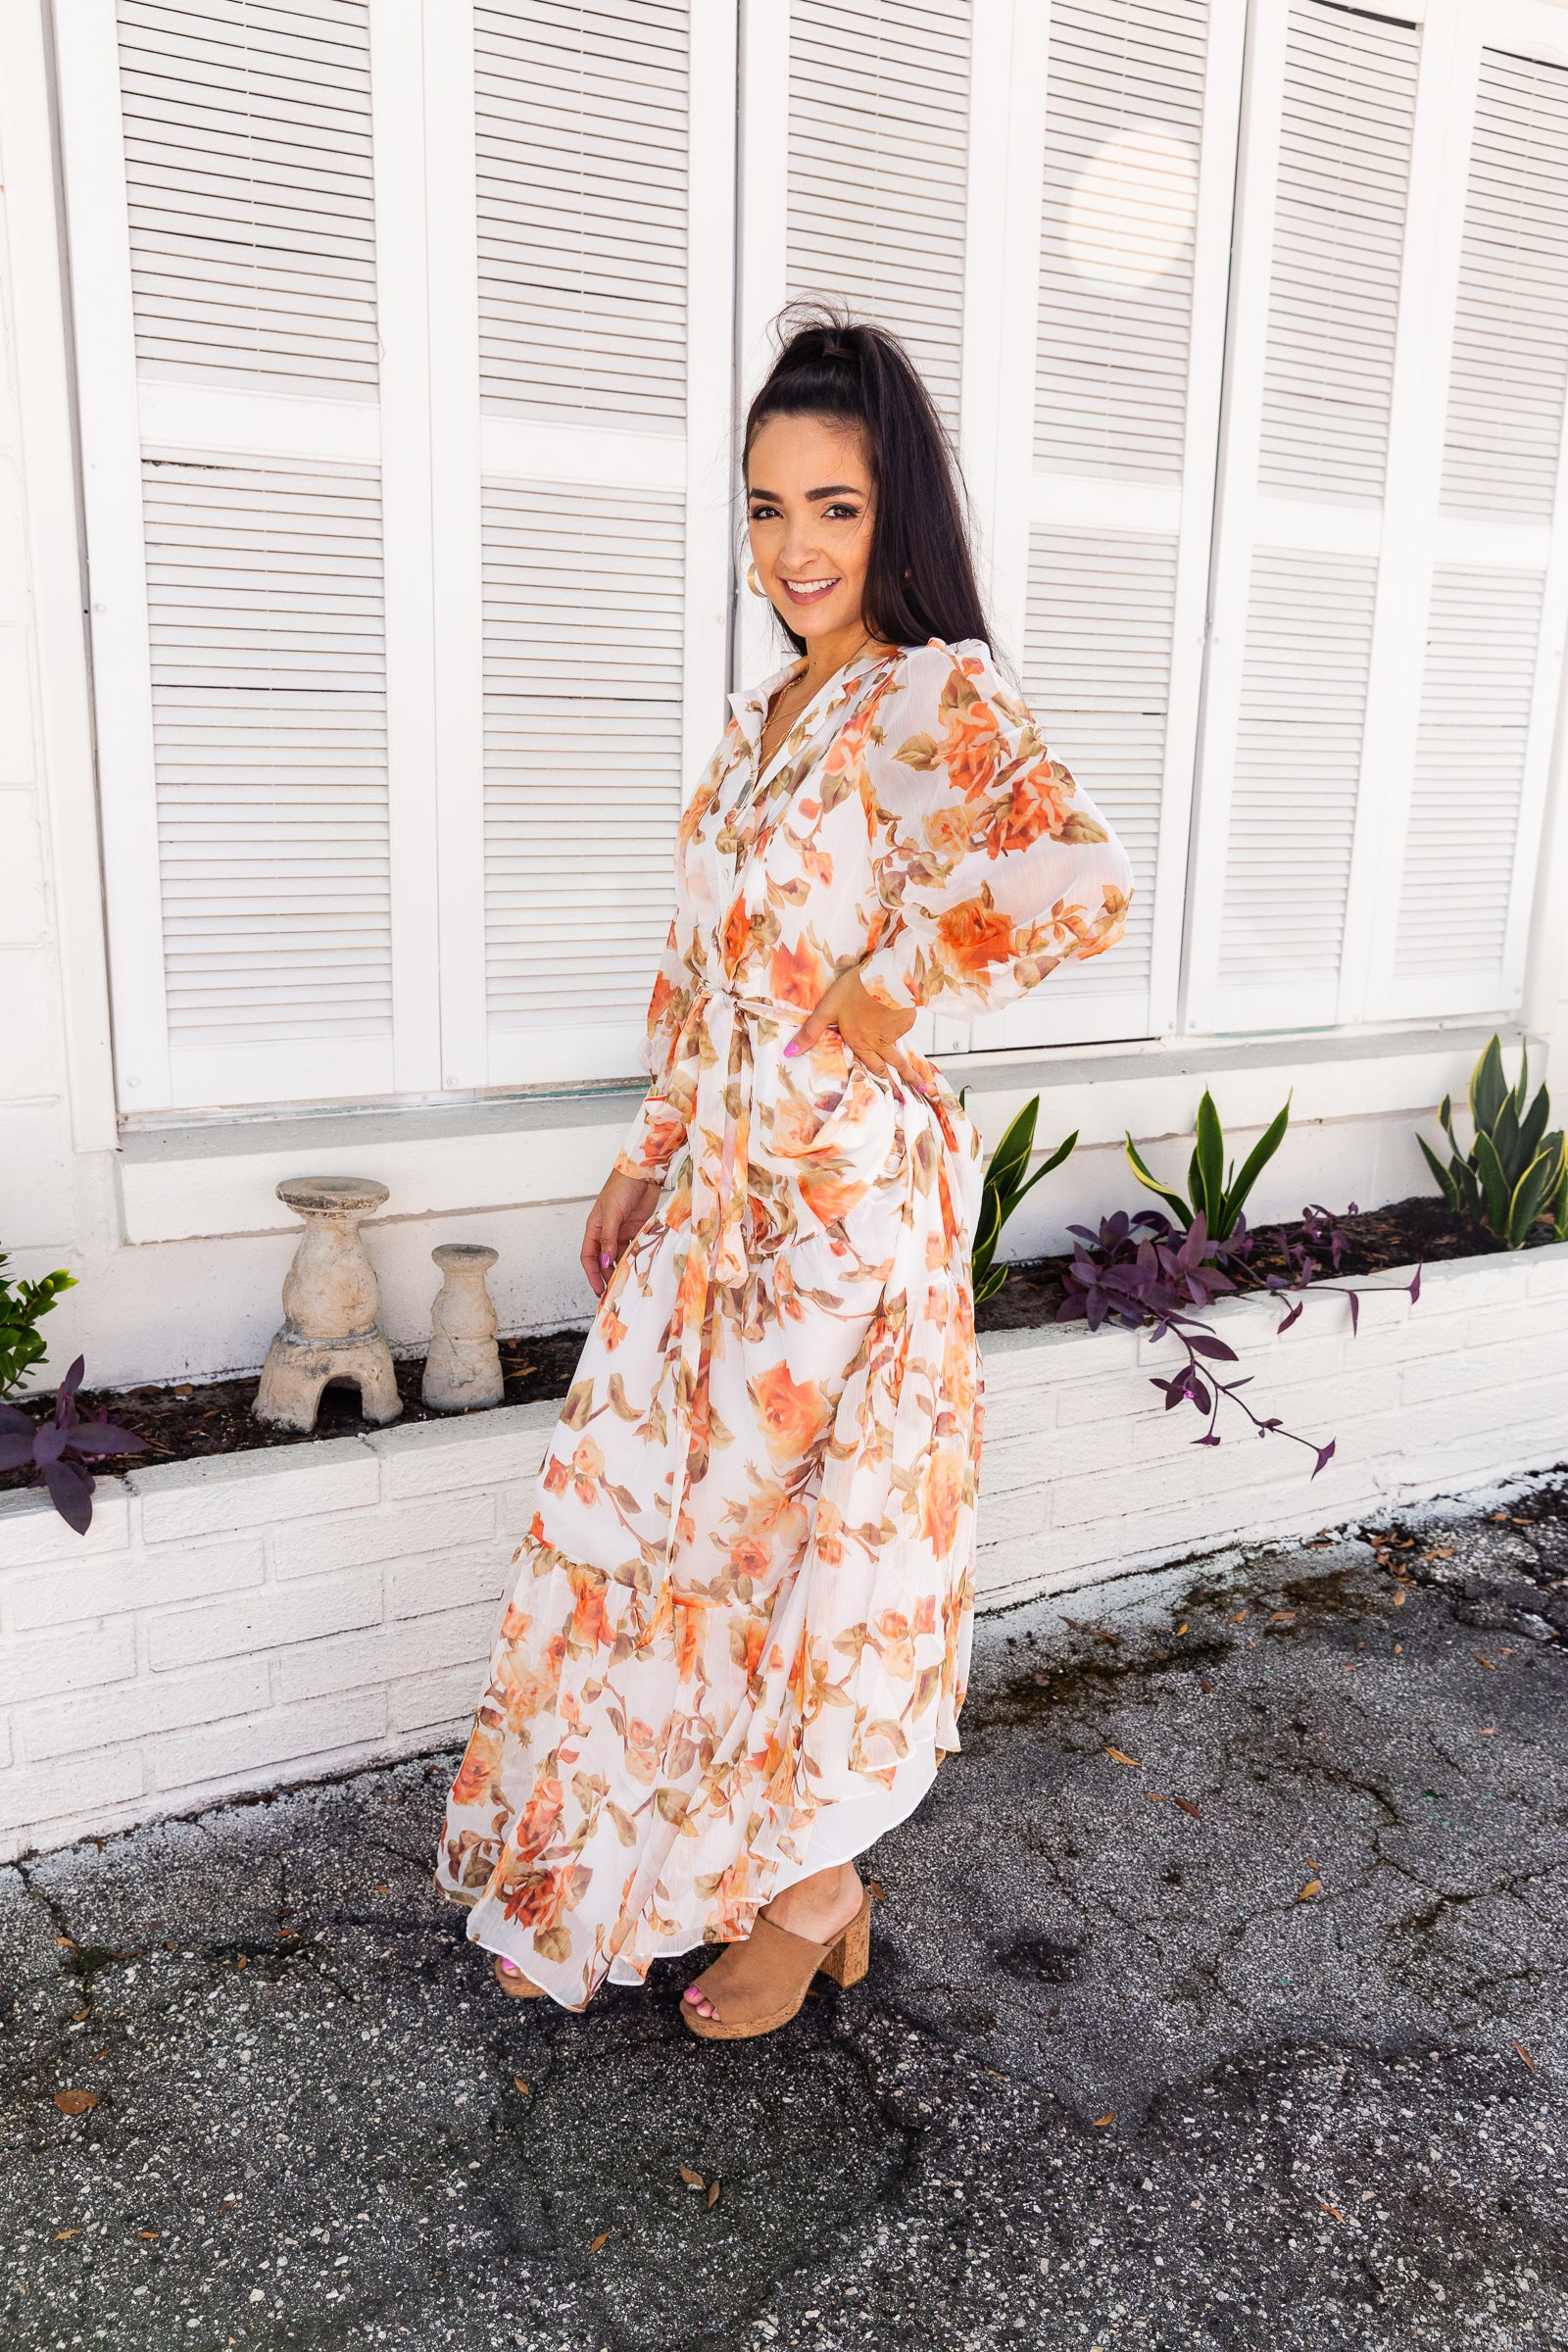 Long button cuffed sleeves that attach to a collared neckline on a button-down silhouette. The relaxed bodice leads to a long flowy skirt with a ruffle hem at the bottom.